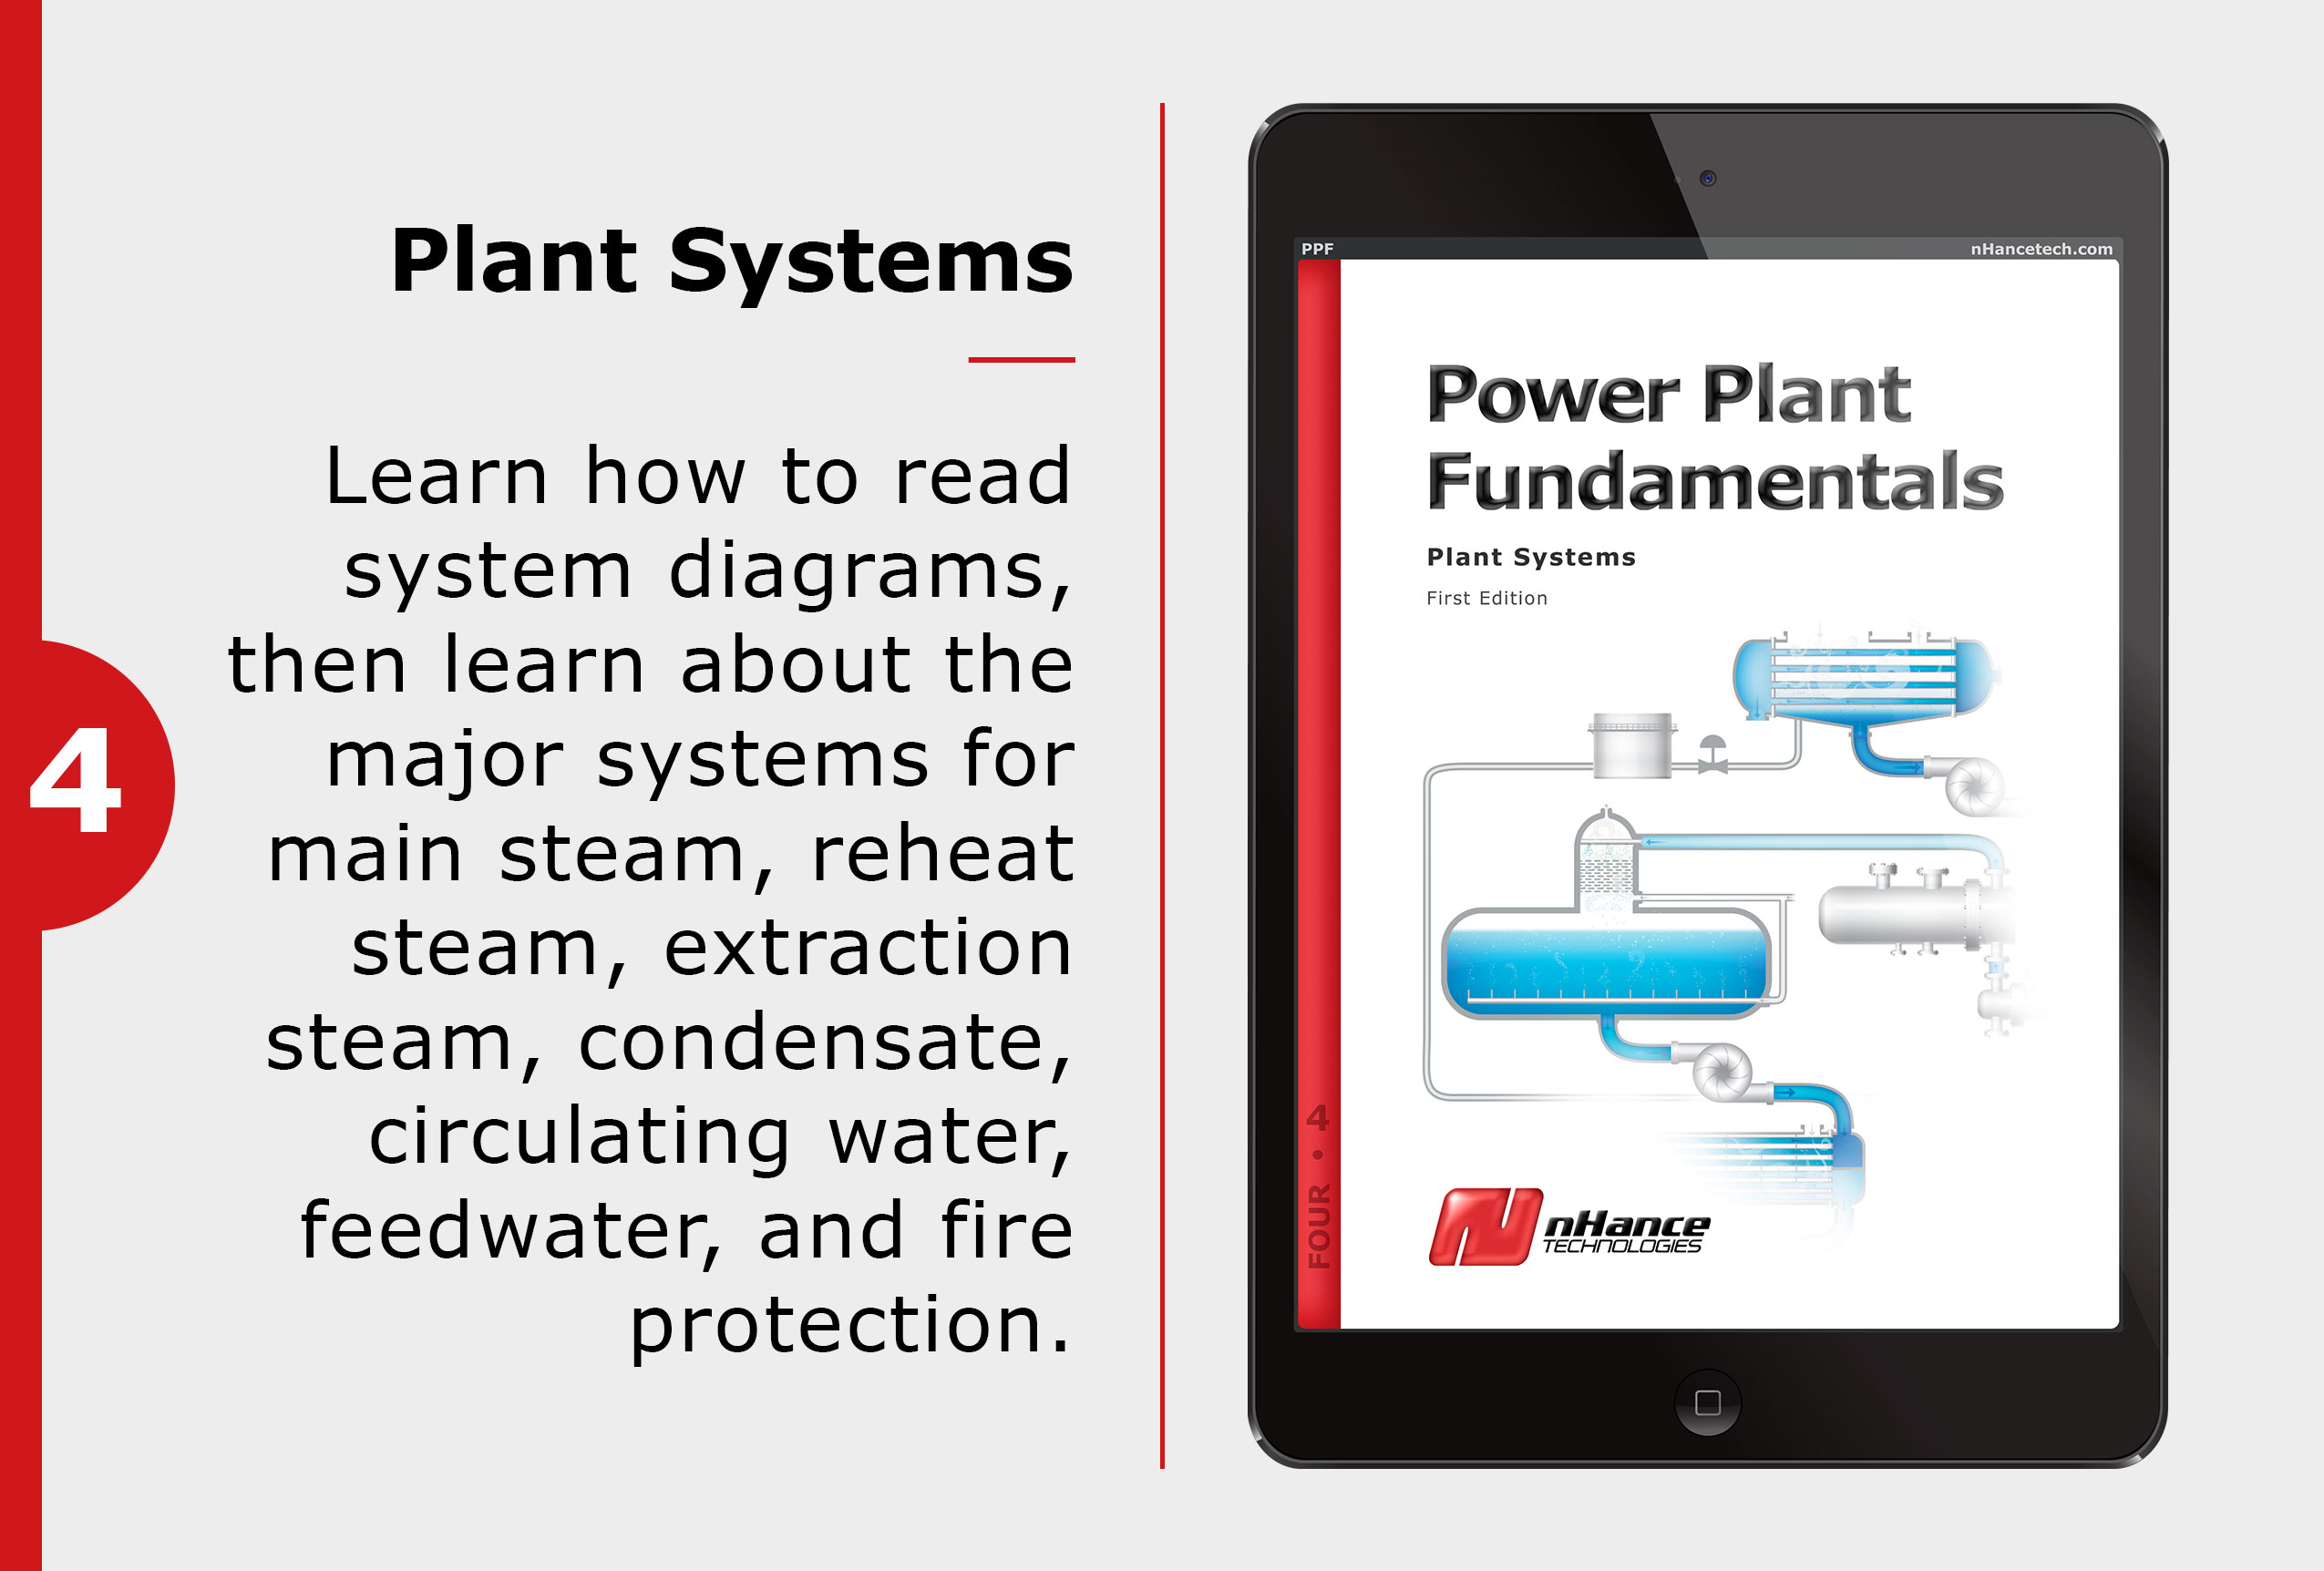 plant systems \u2013 nhance technologiespower plant systems \u2014 learn how to read system diagrams, then learn about the major